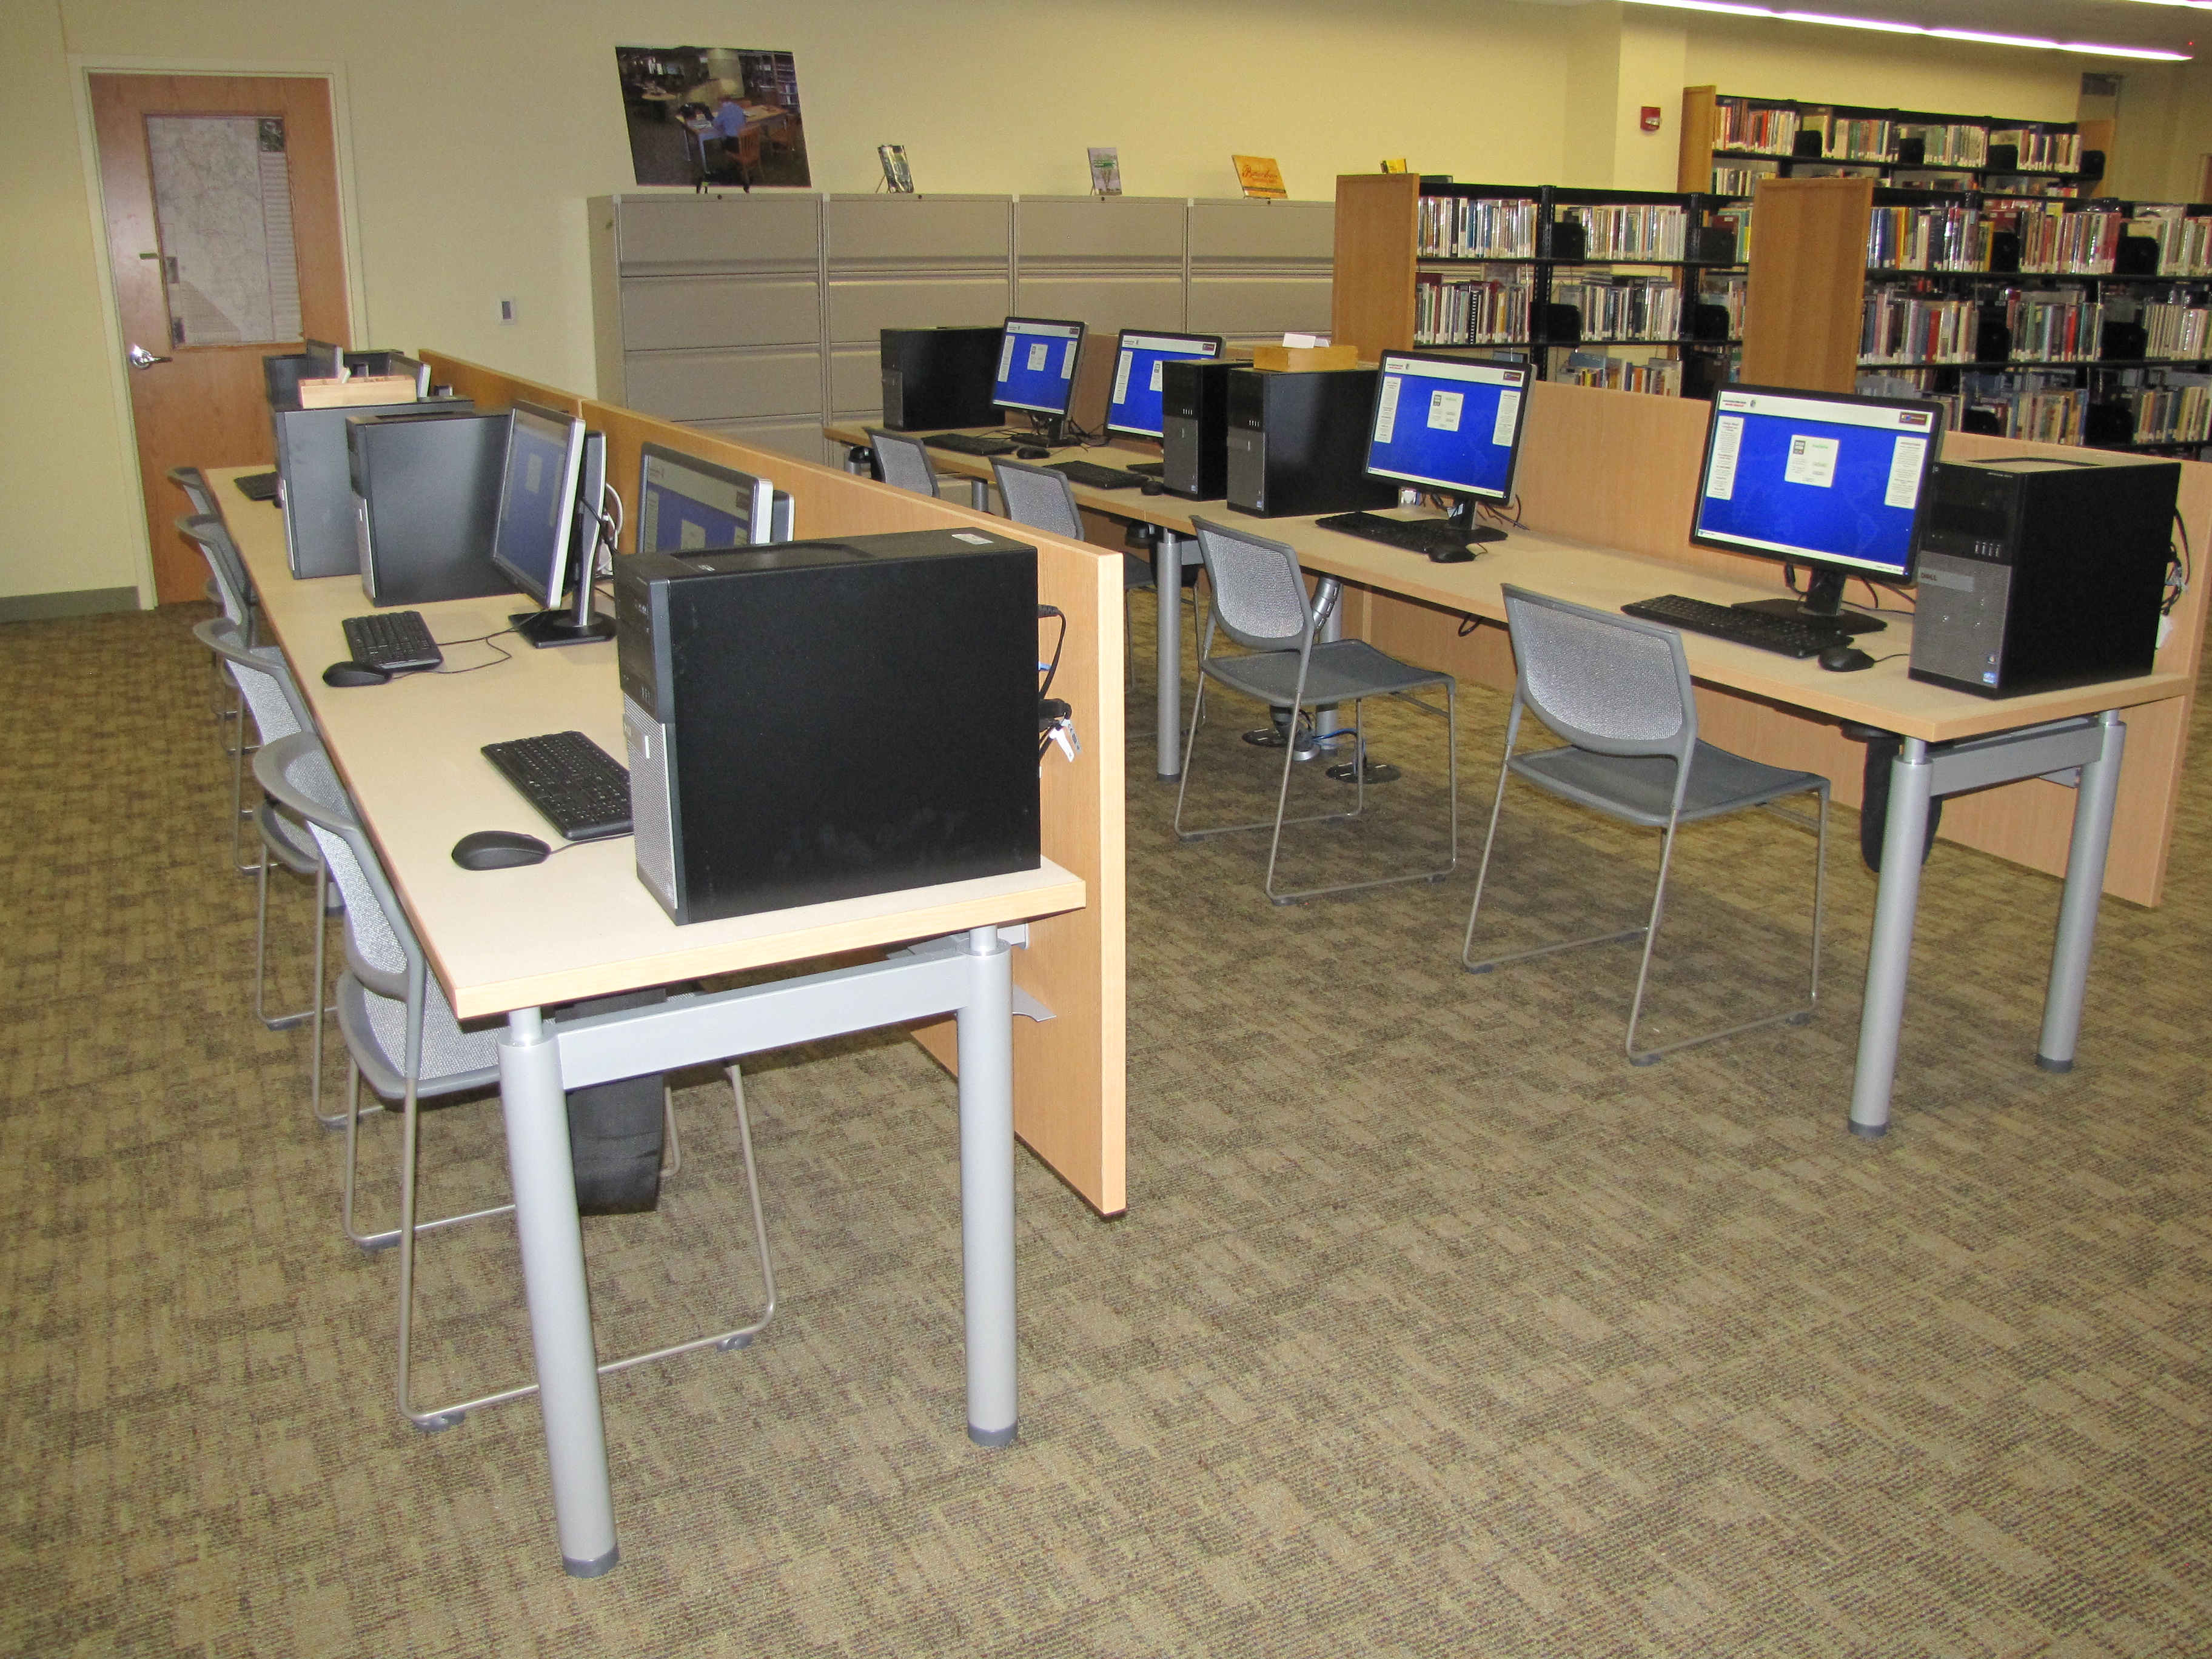 Free Computer Use Kenton County Public Library We Have A New If Youre Interested In Accessing Online Databases Such As Ancestrycom Genky Or Faces And Places Eight Computers Dedicated To This Purpose